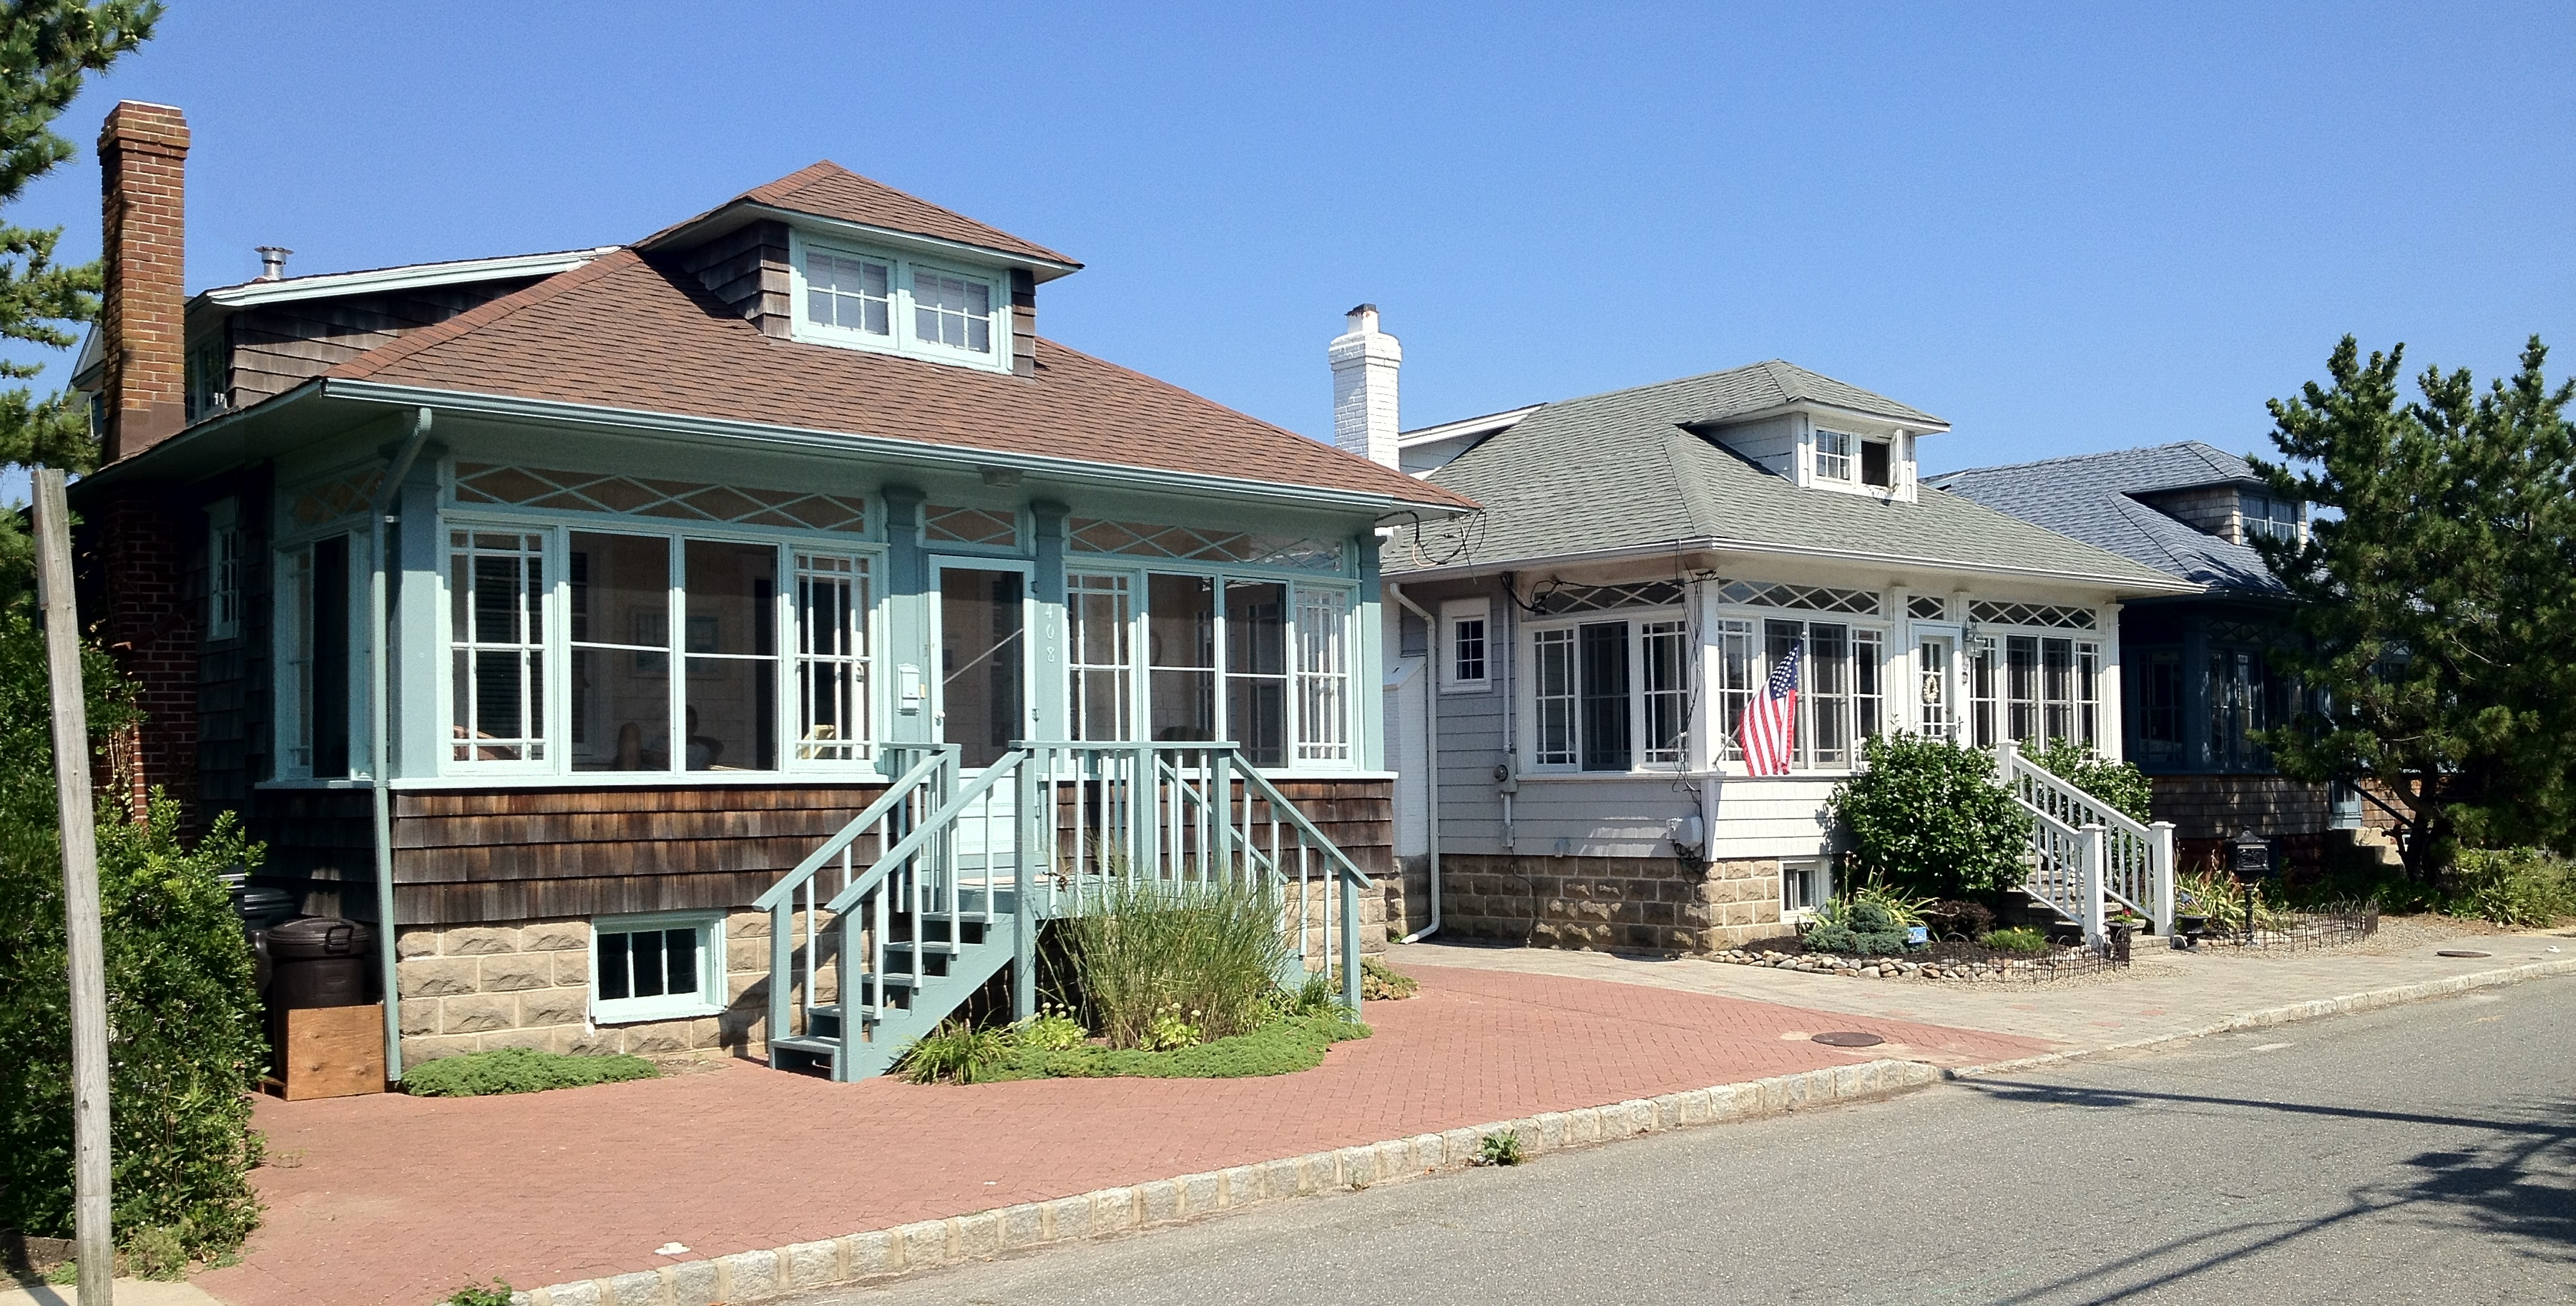 This Grand Craftsman Home Above And Below Which Sits Just A Half Block From The Beach Was My Favorite Hands Down Ive Never Before Seen Dormers